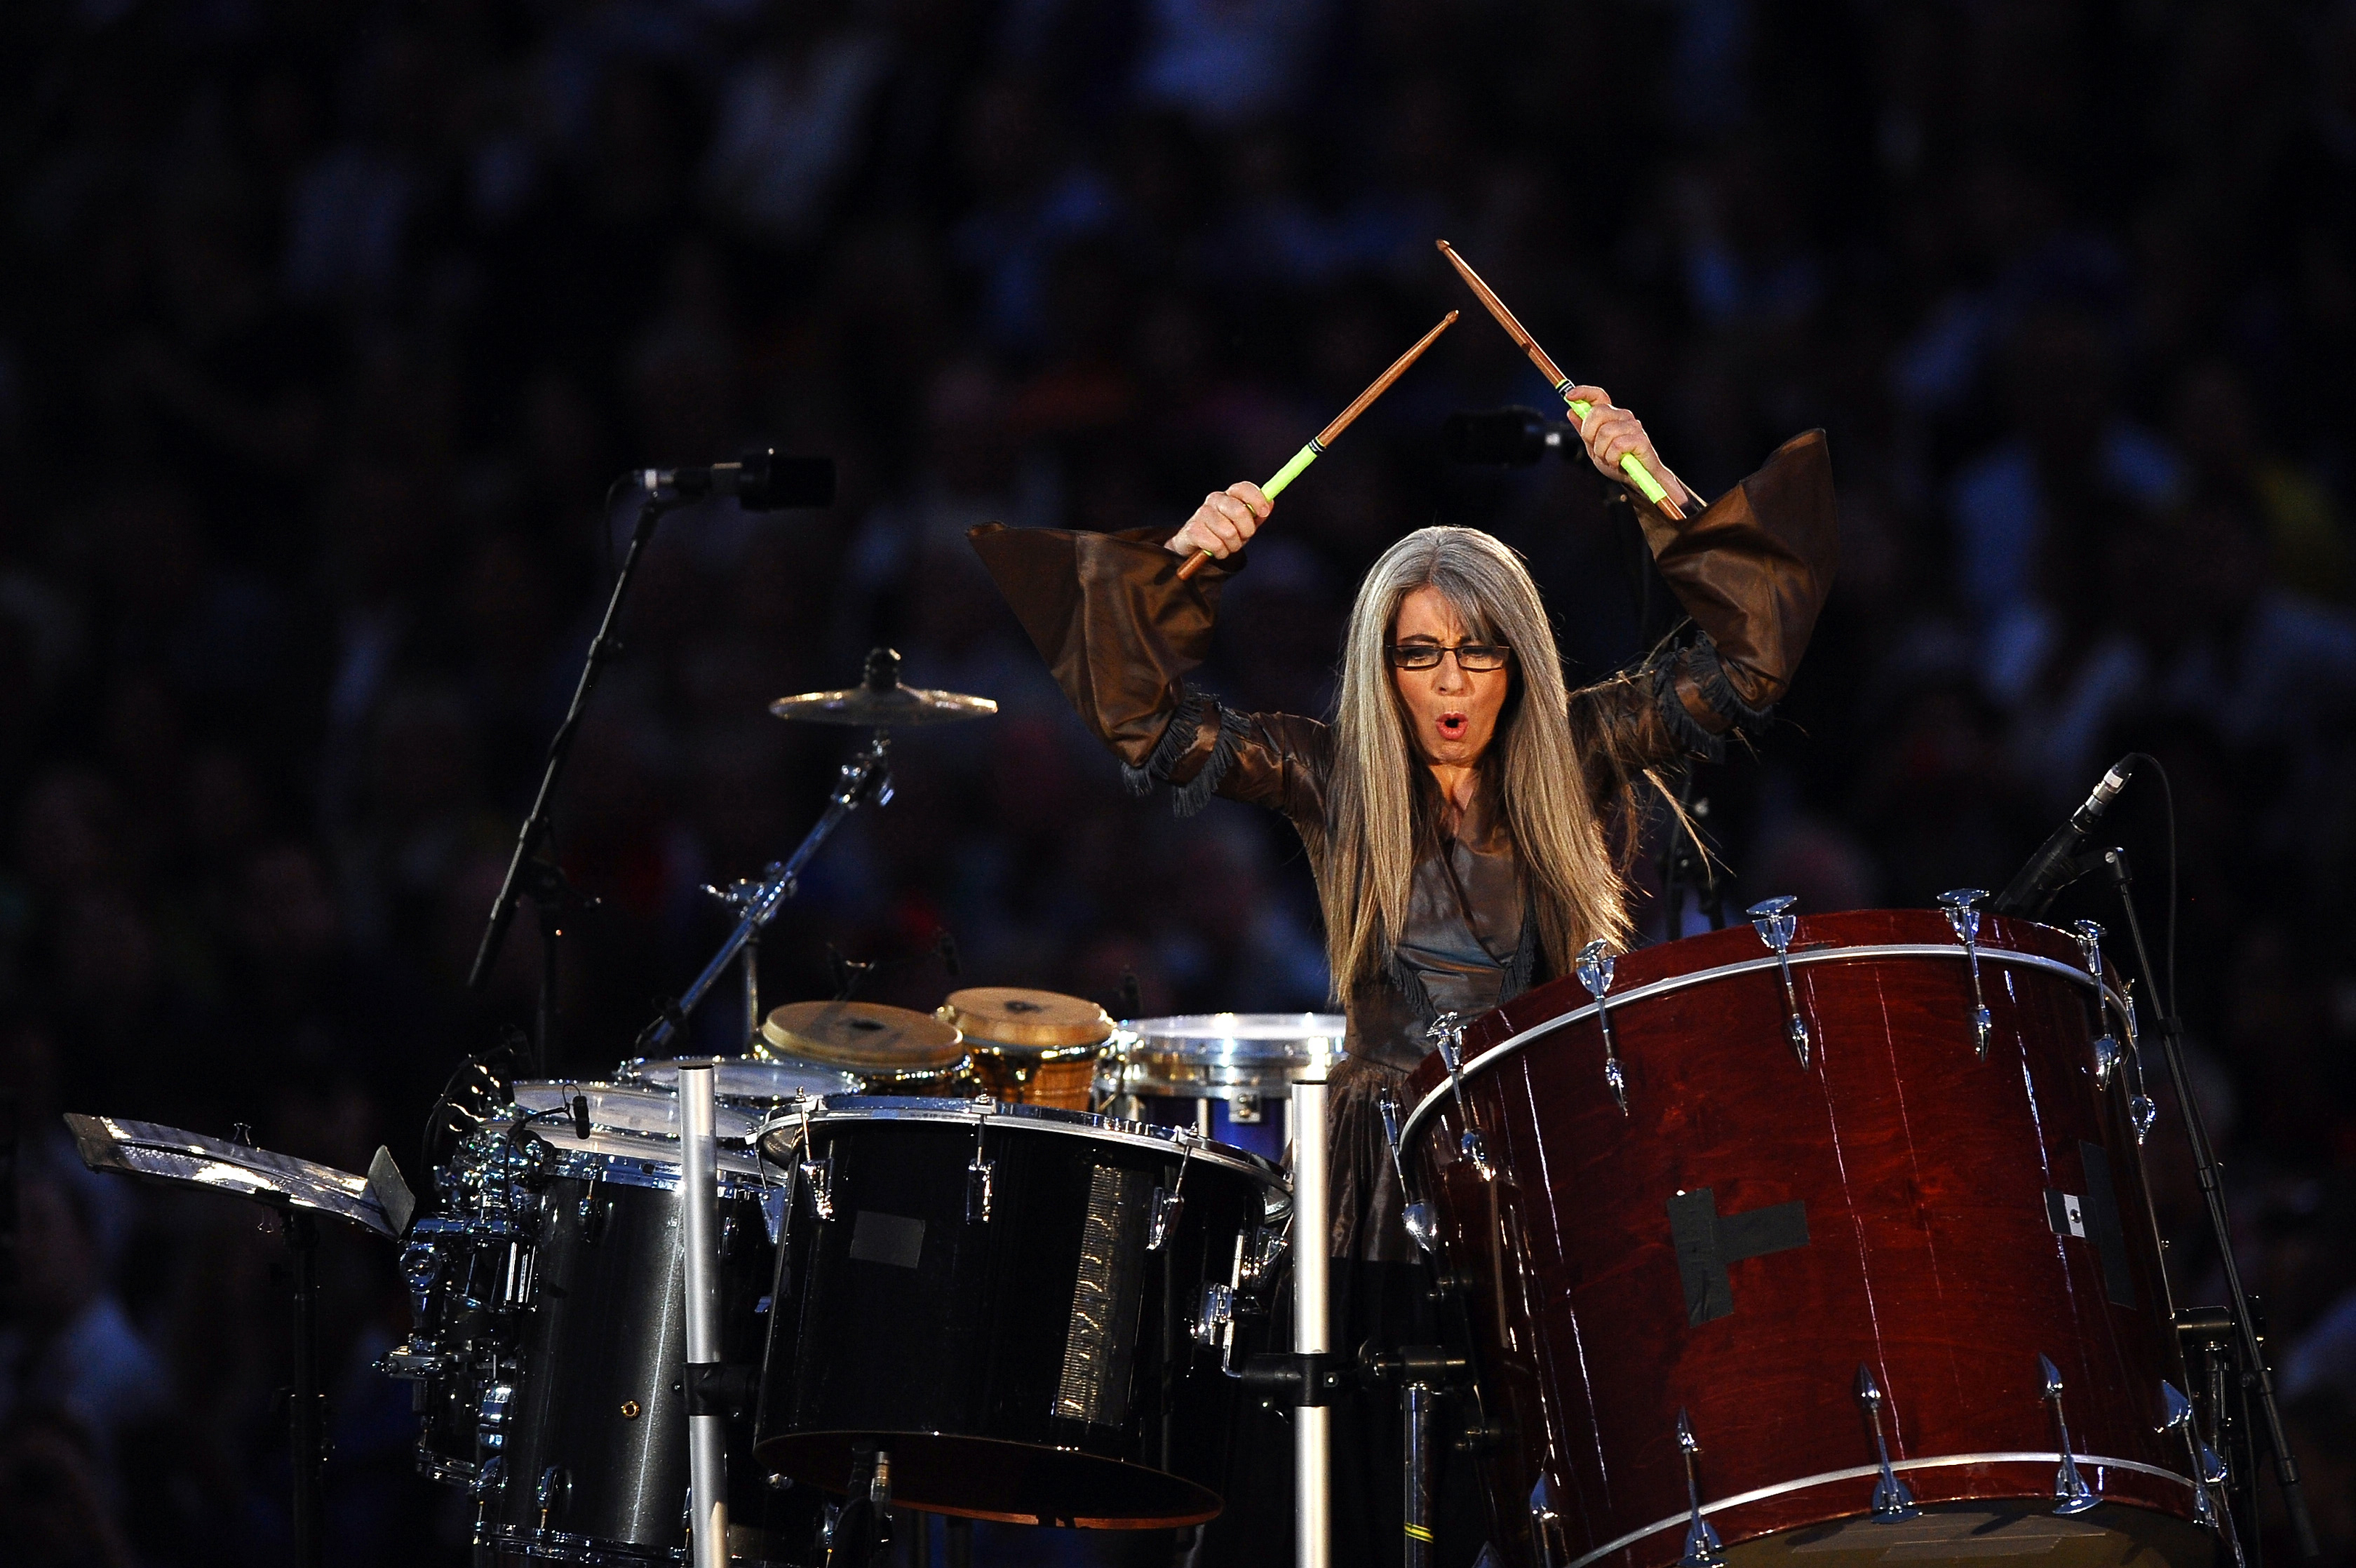 Dame Evelyn Glennie is among the names on the Power 100 list.